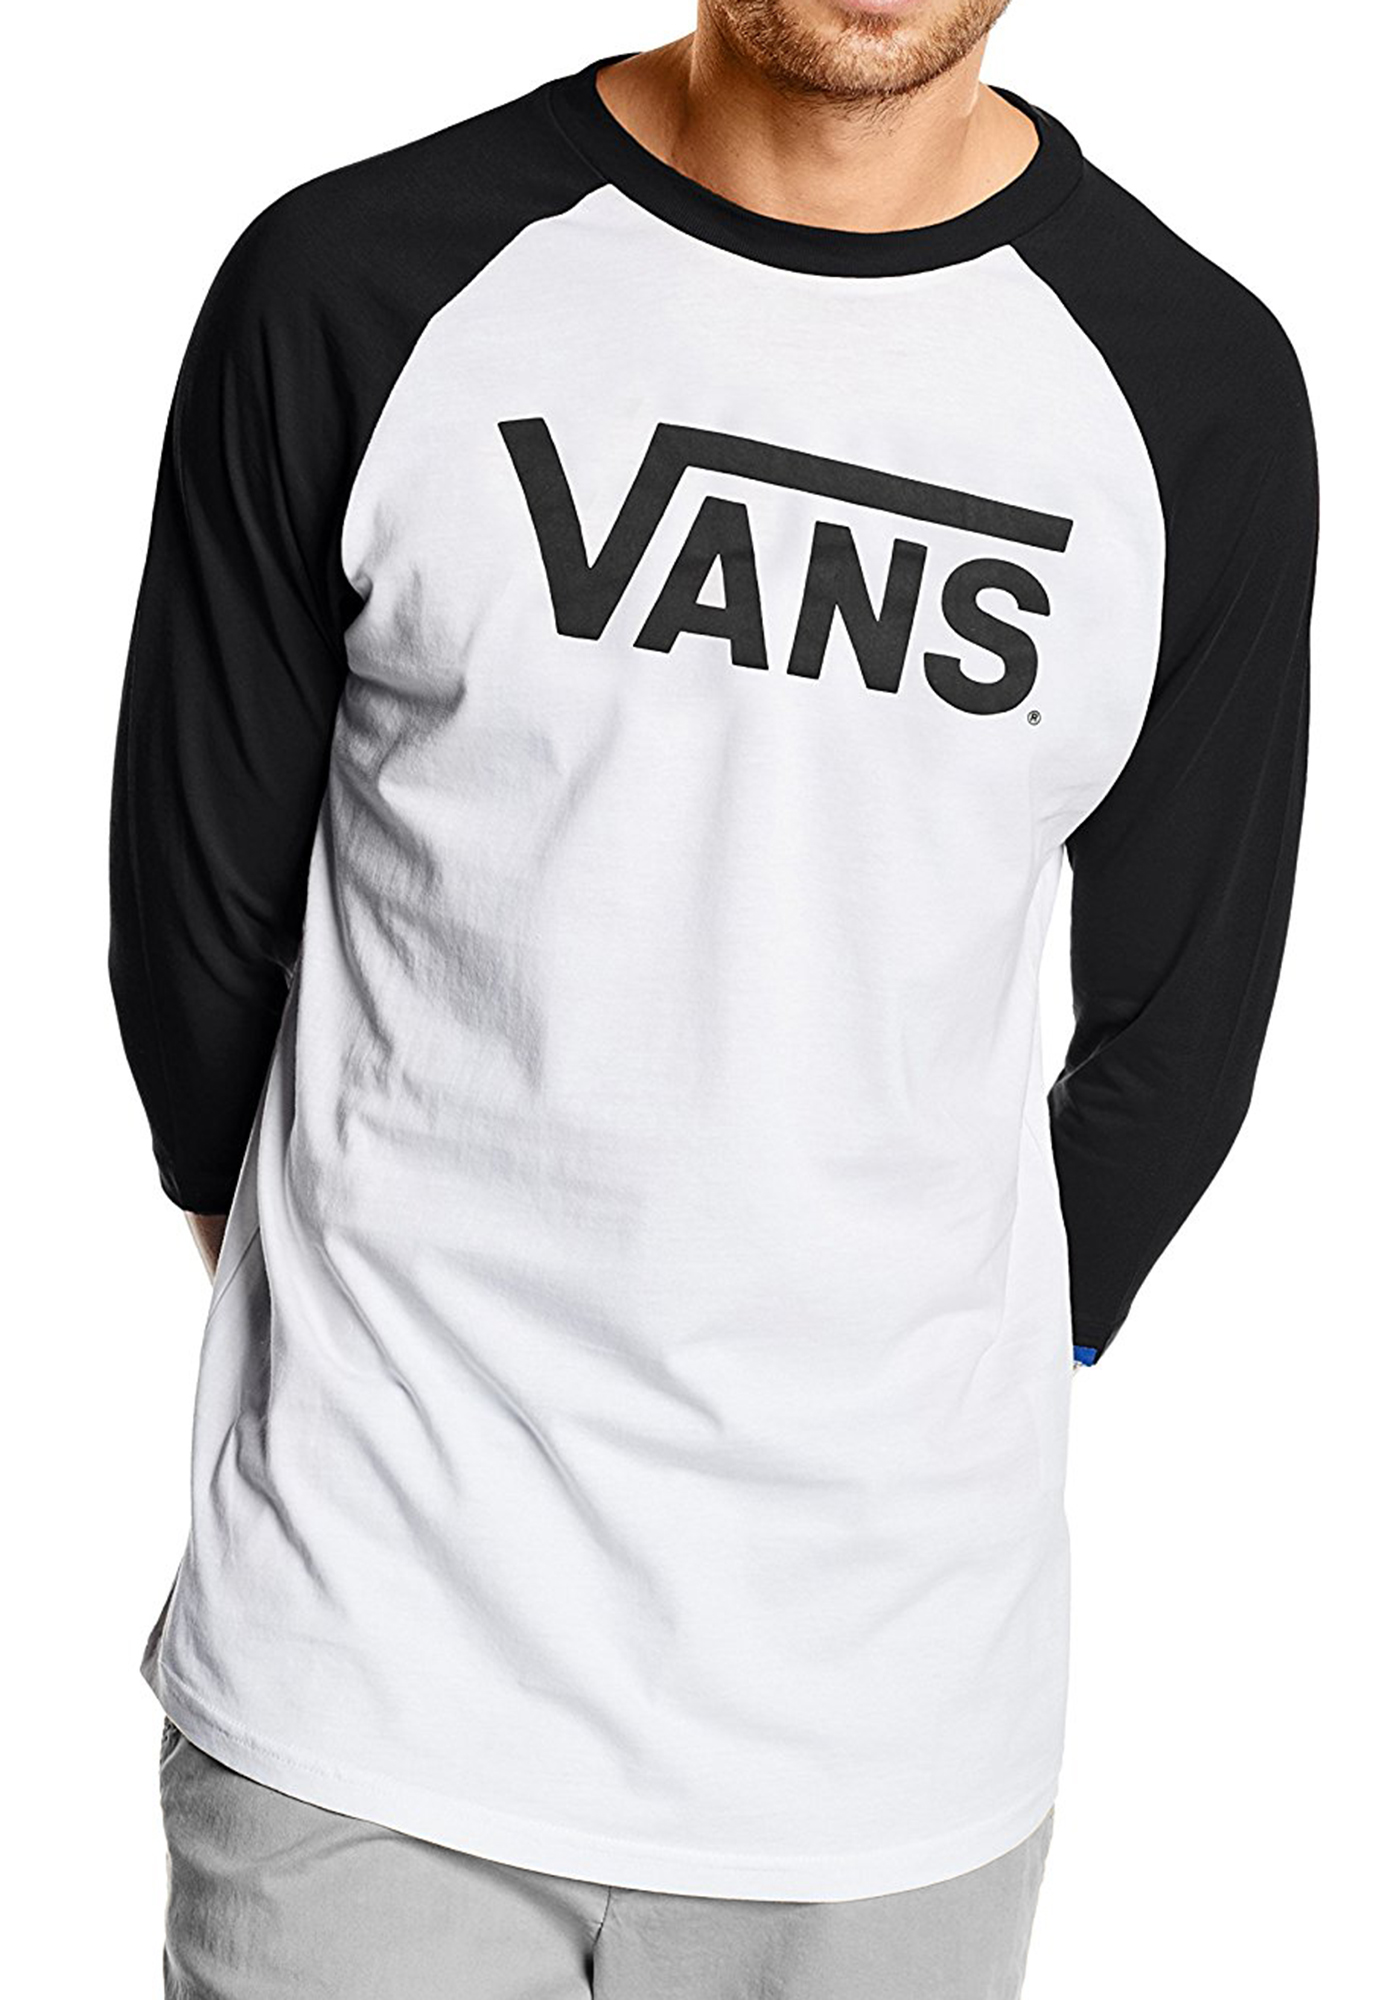 Details zu VANS New Mens Classic Logo Long Sleeve Raglan T Shirt Print Top Tee Black White